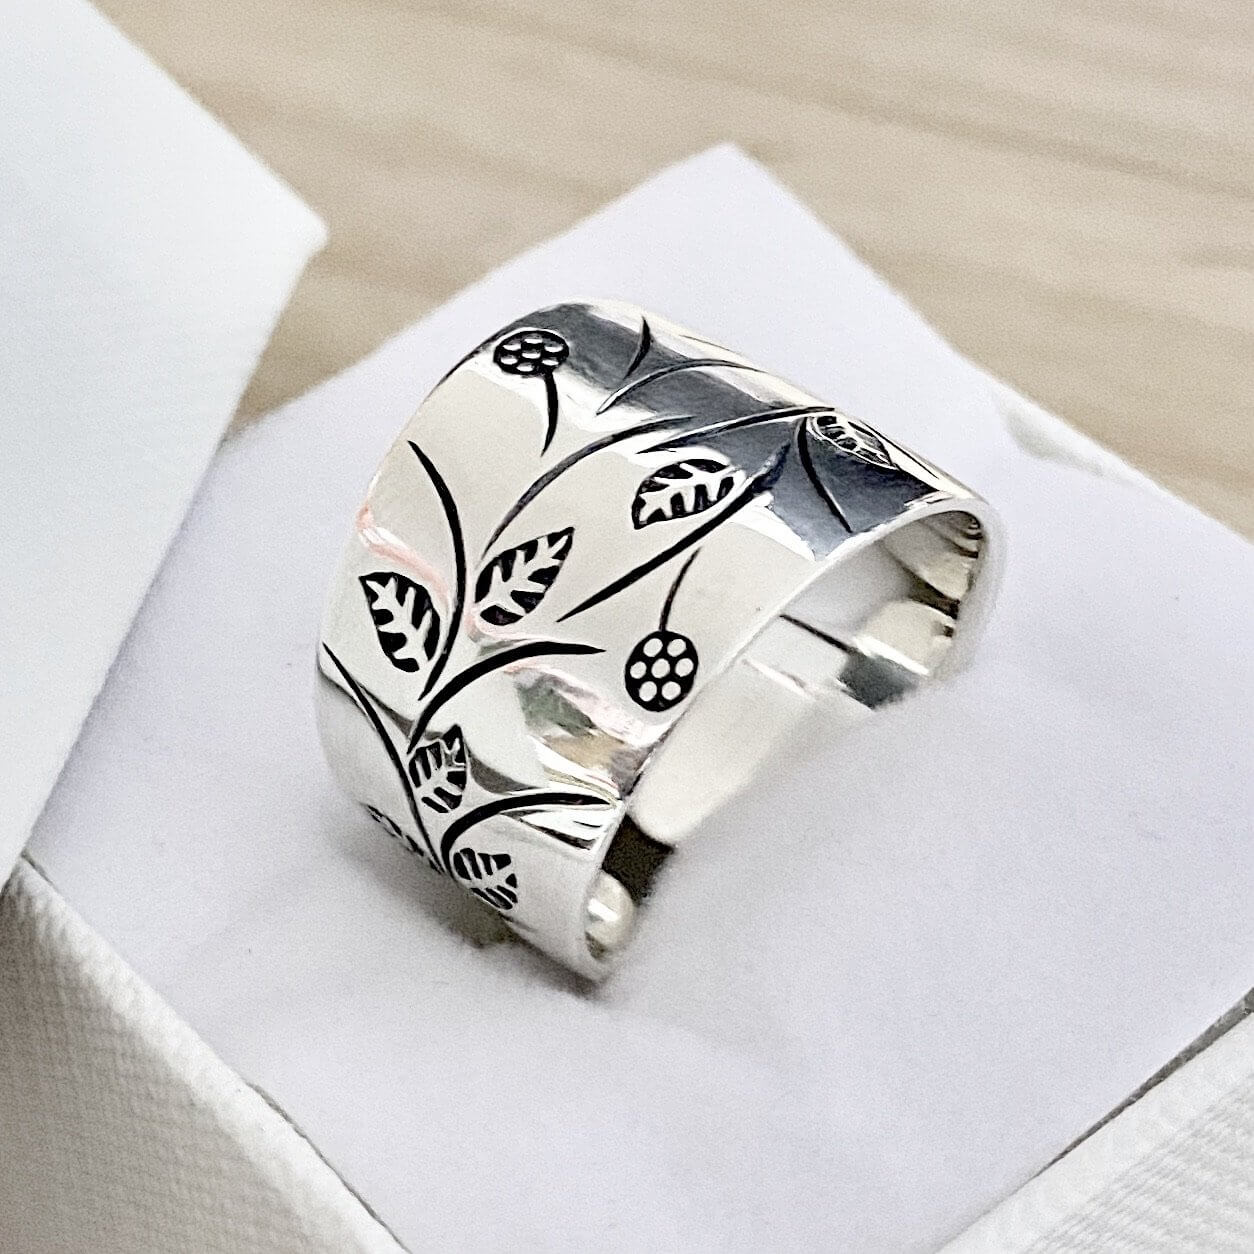 Laihas Garden Of Spring Statement Gypsy Cuff Sterling Silver Boho Ring Ass Sizes - Laihas Bohemian Dreaming